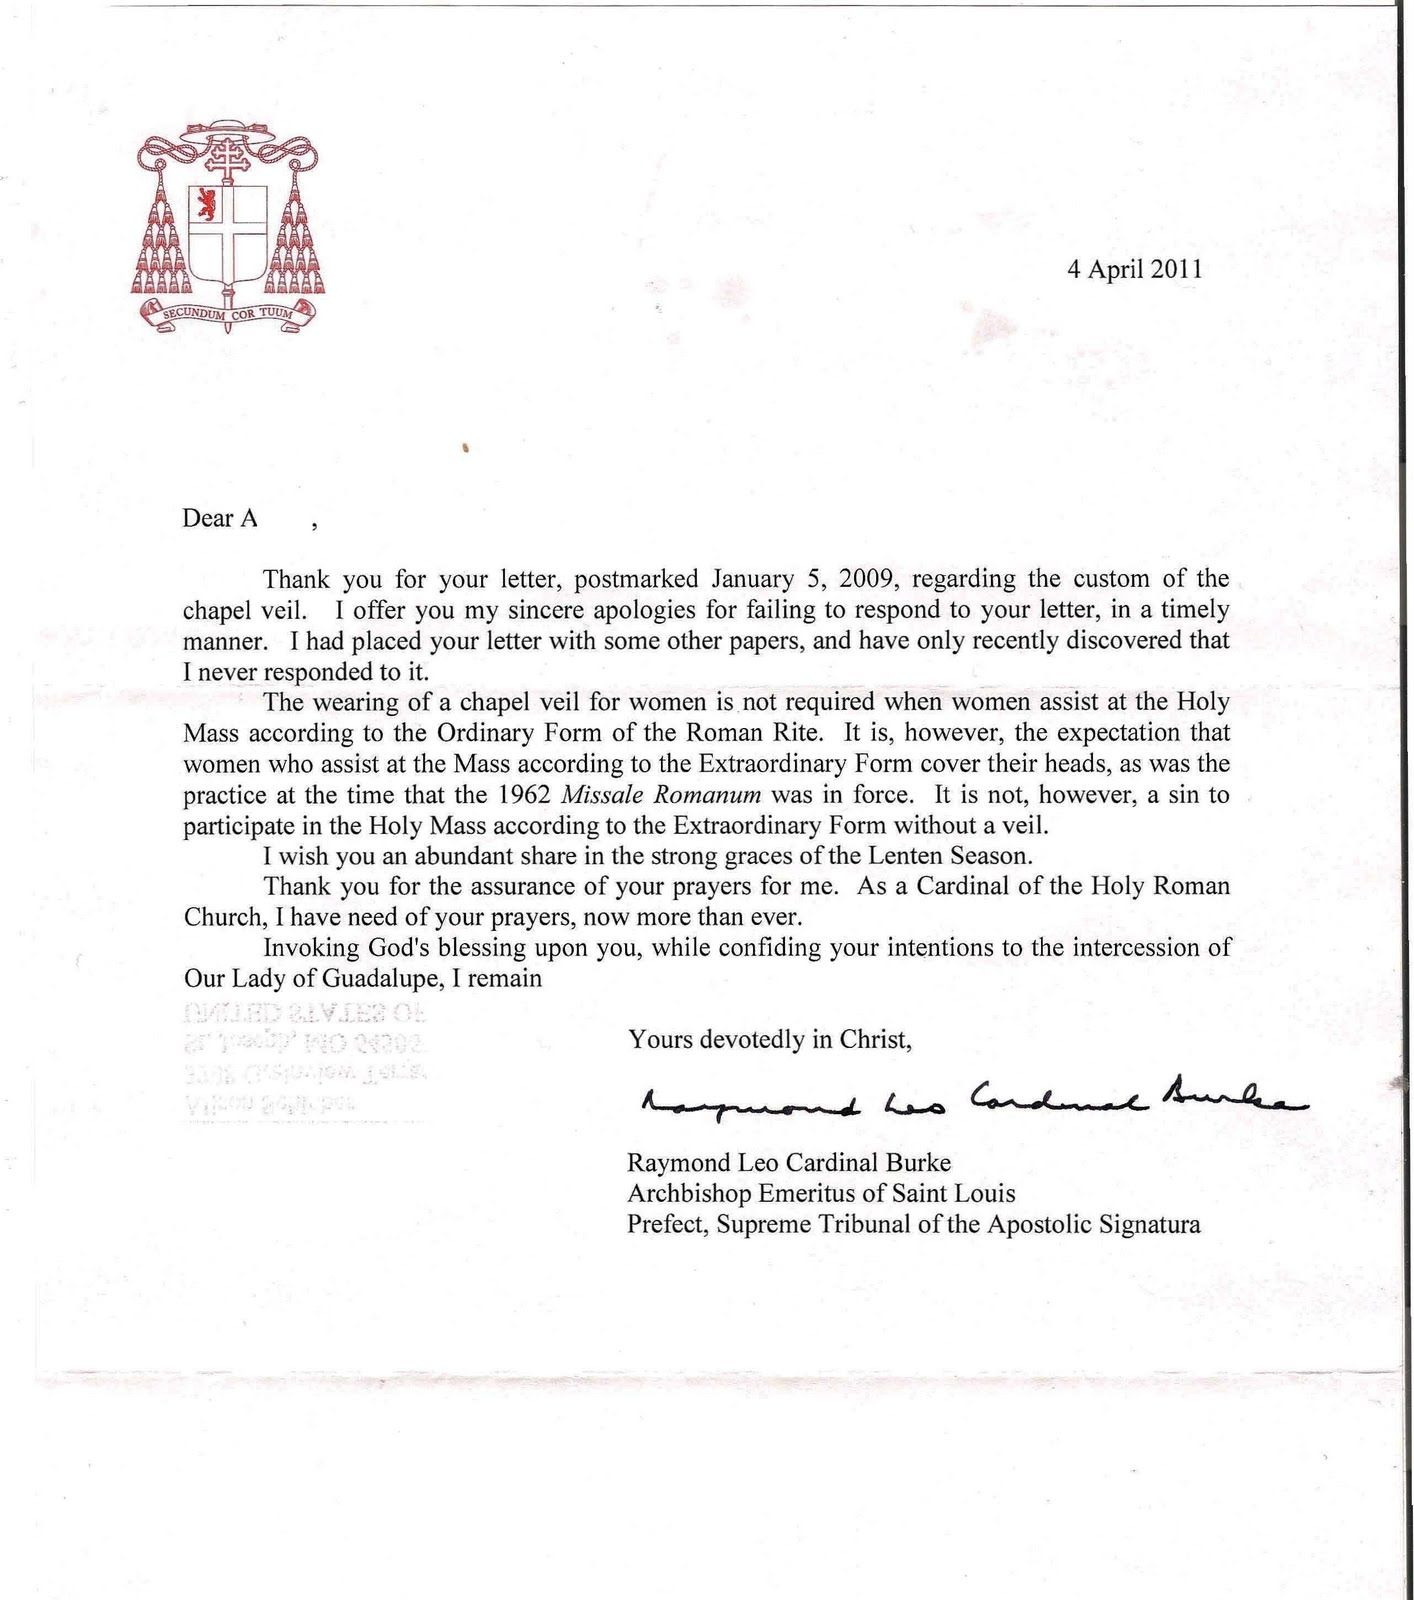 Immigration Recommendation Letter Template - Sample Reference Letter for A Friend for Immigration